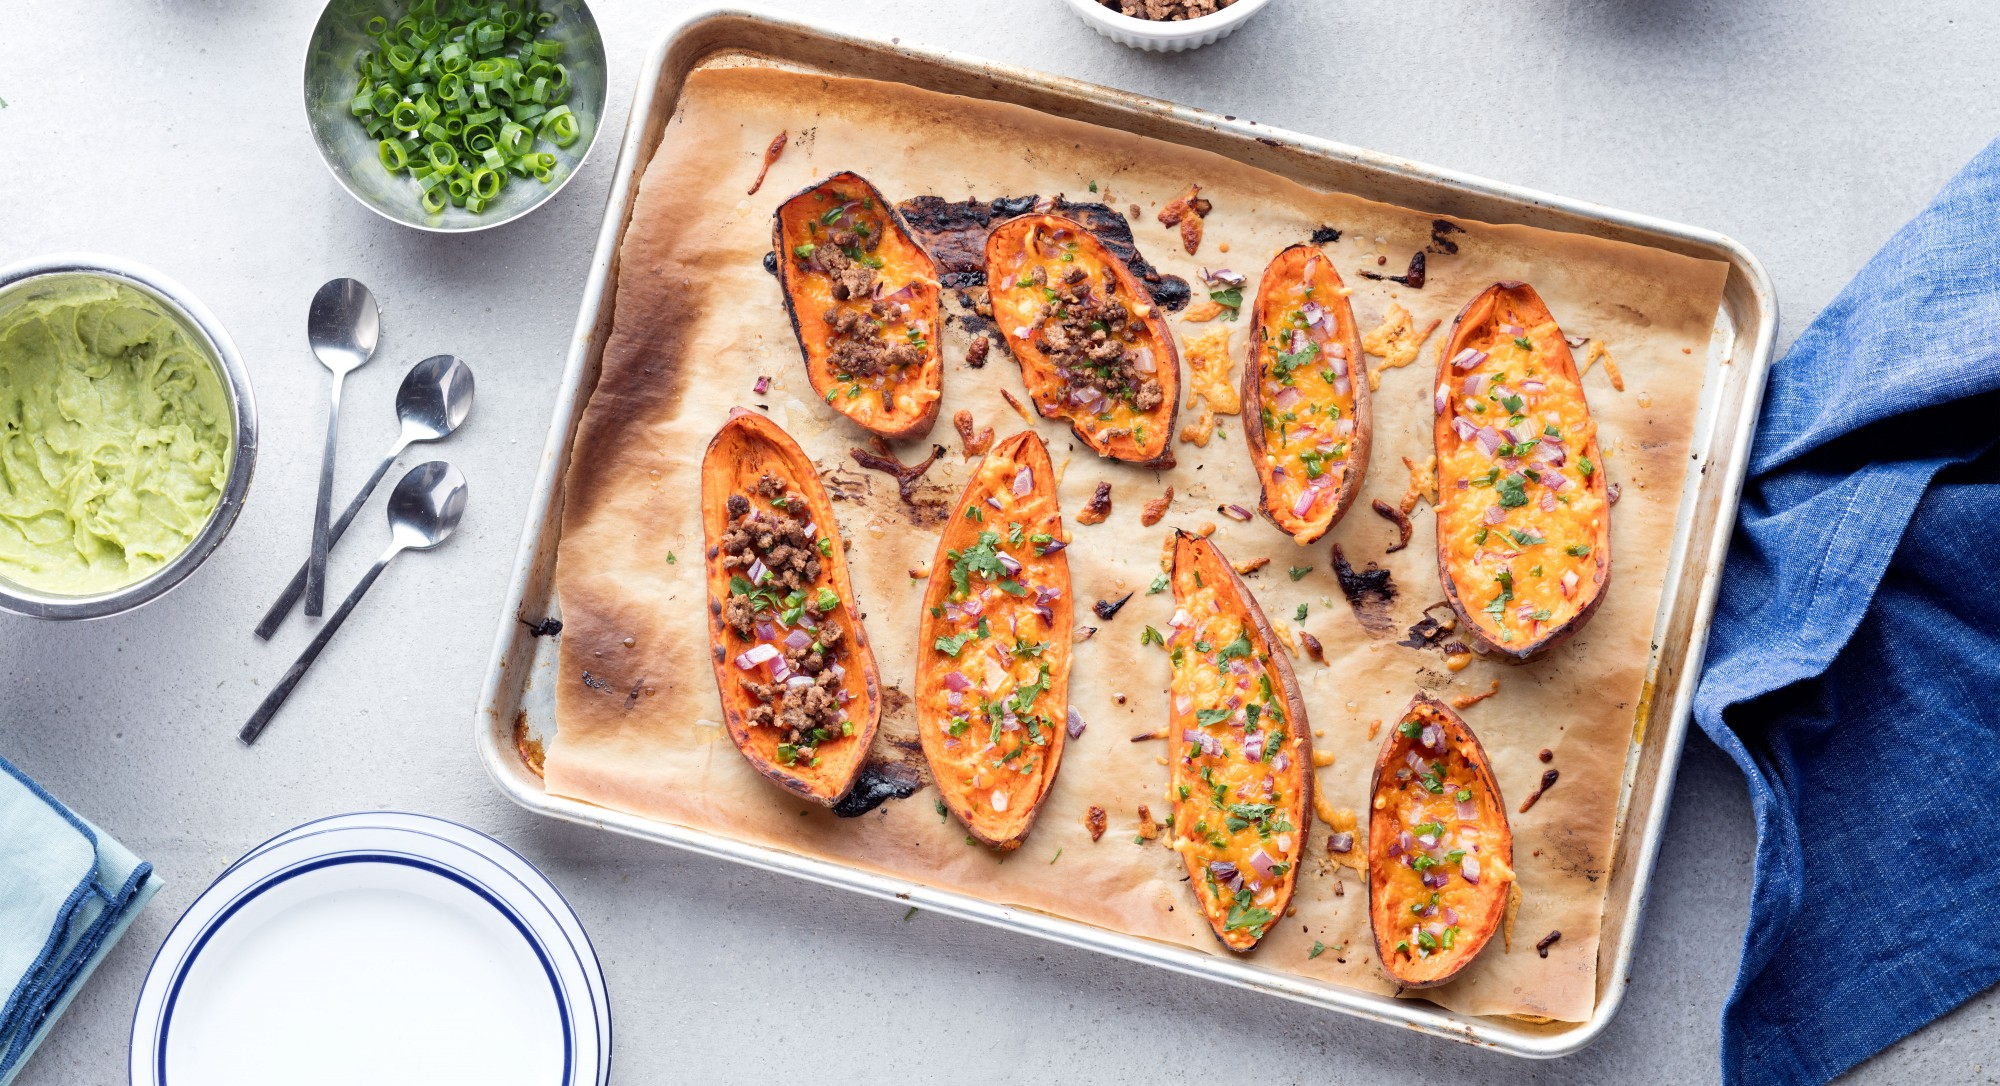 5 Simple Swaps to Make Healthier Potato Skins for the Super Bowl